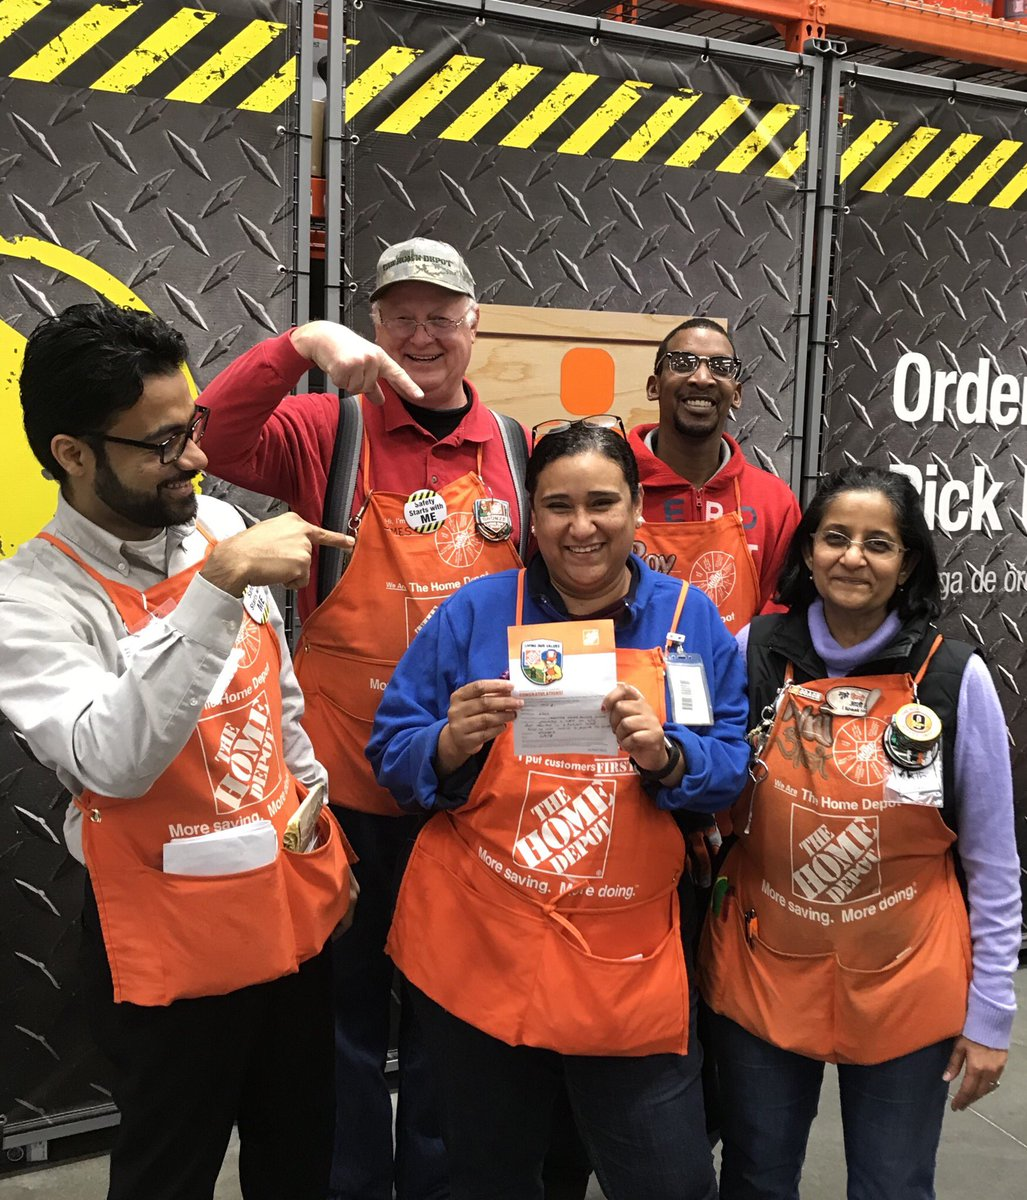 Ana B At The Service Desk Getting A Homer Glastonbury CT For Creating Shareholder Value Tremendous Job High5 Orangepromise Homedepot Kwoolleyjr